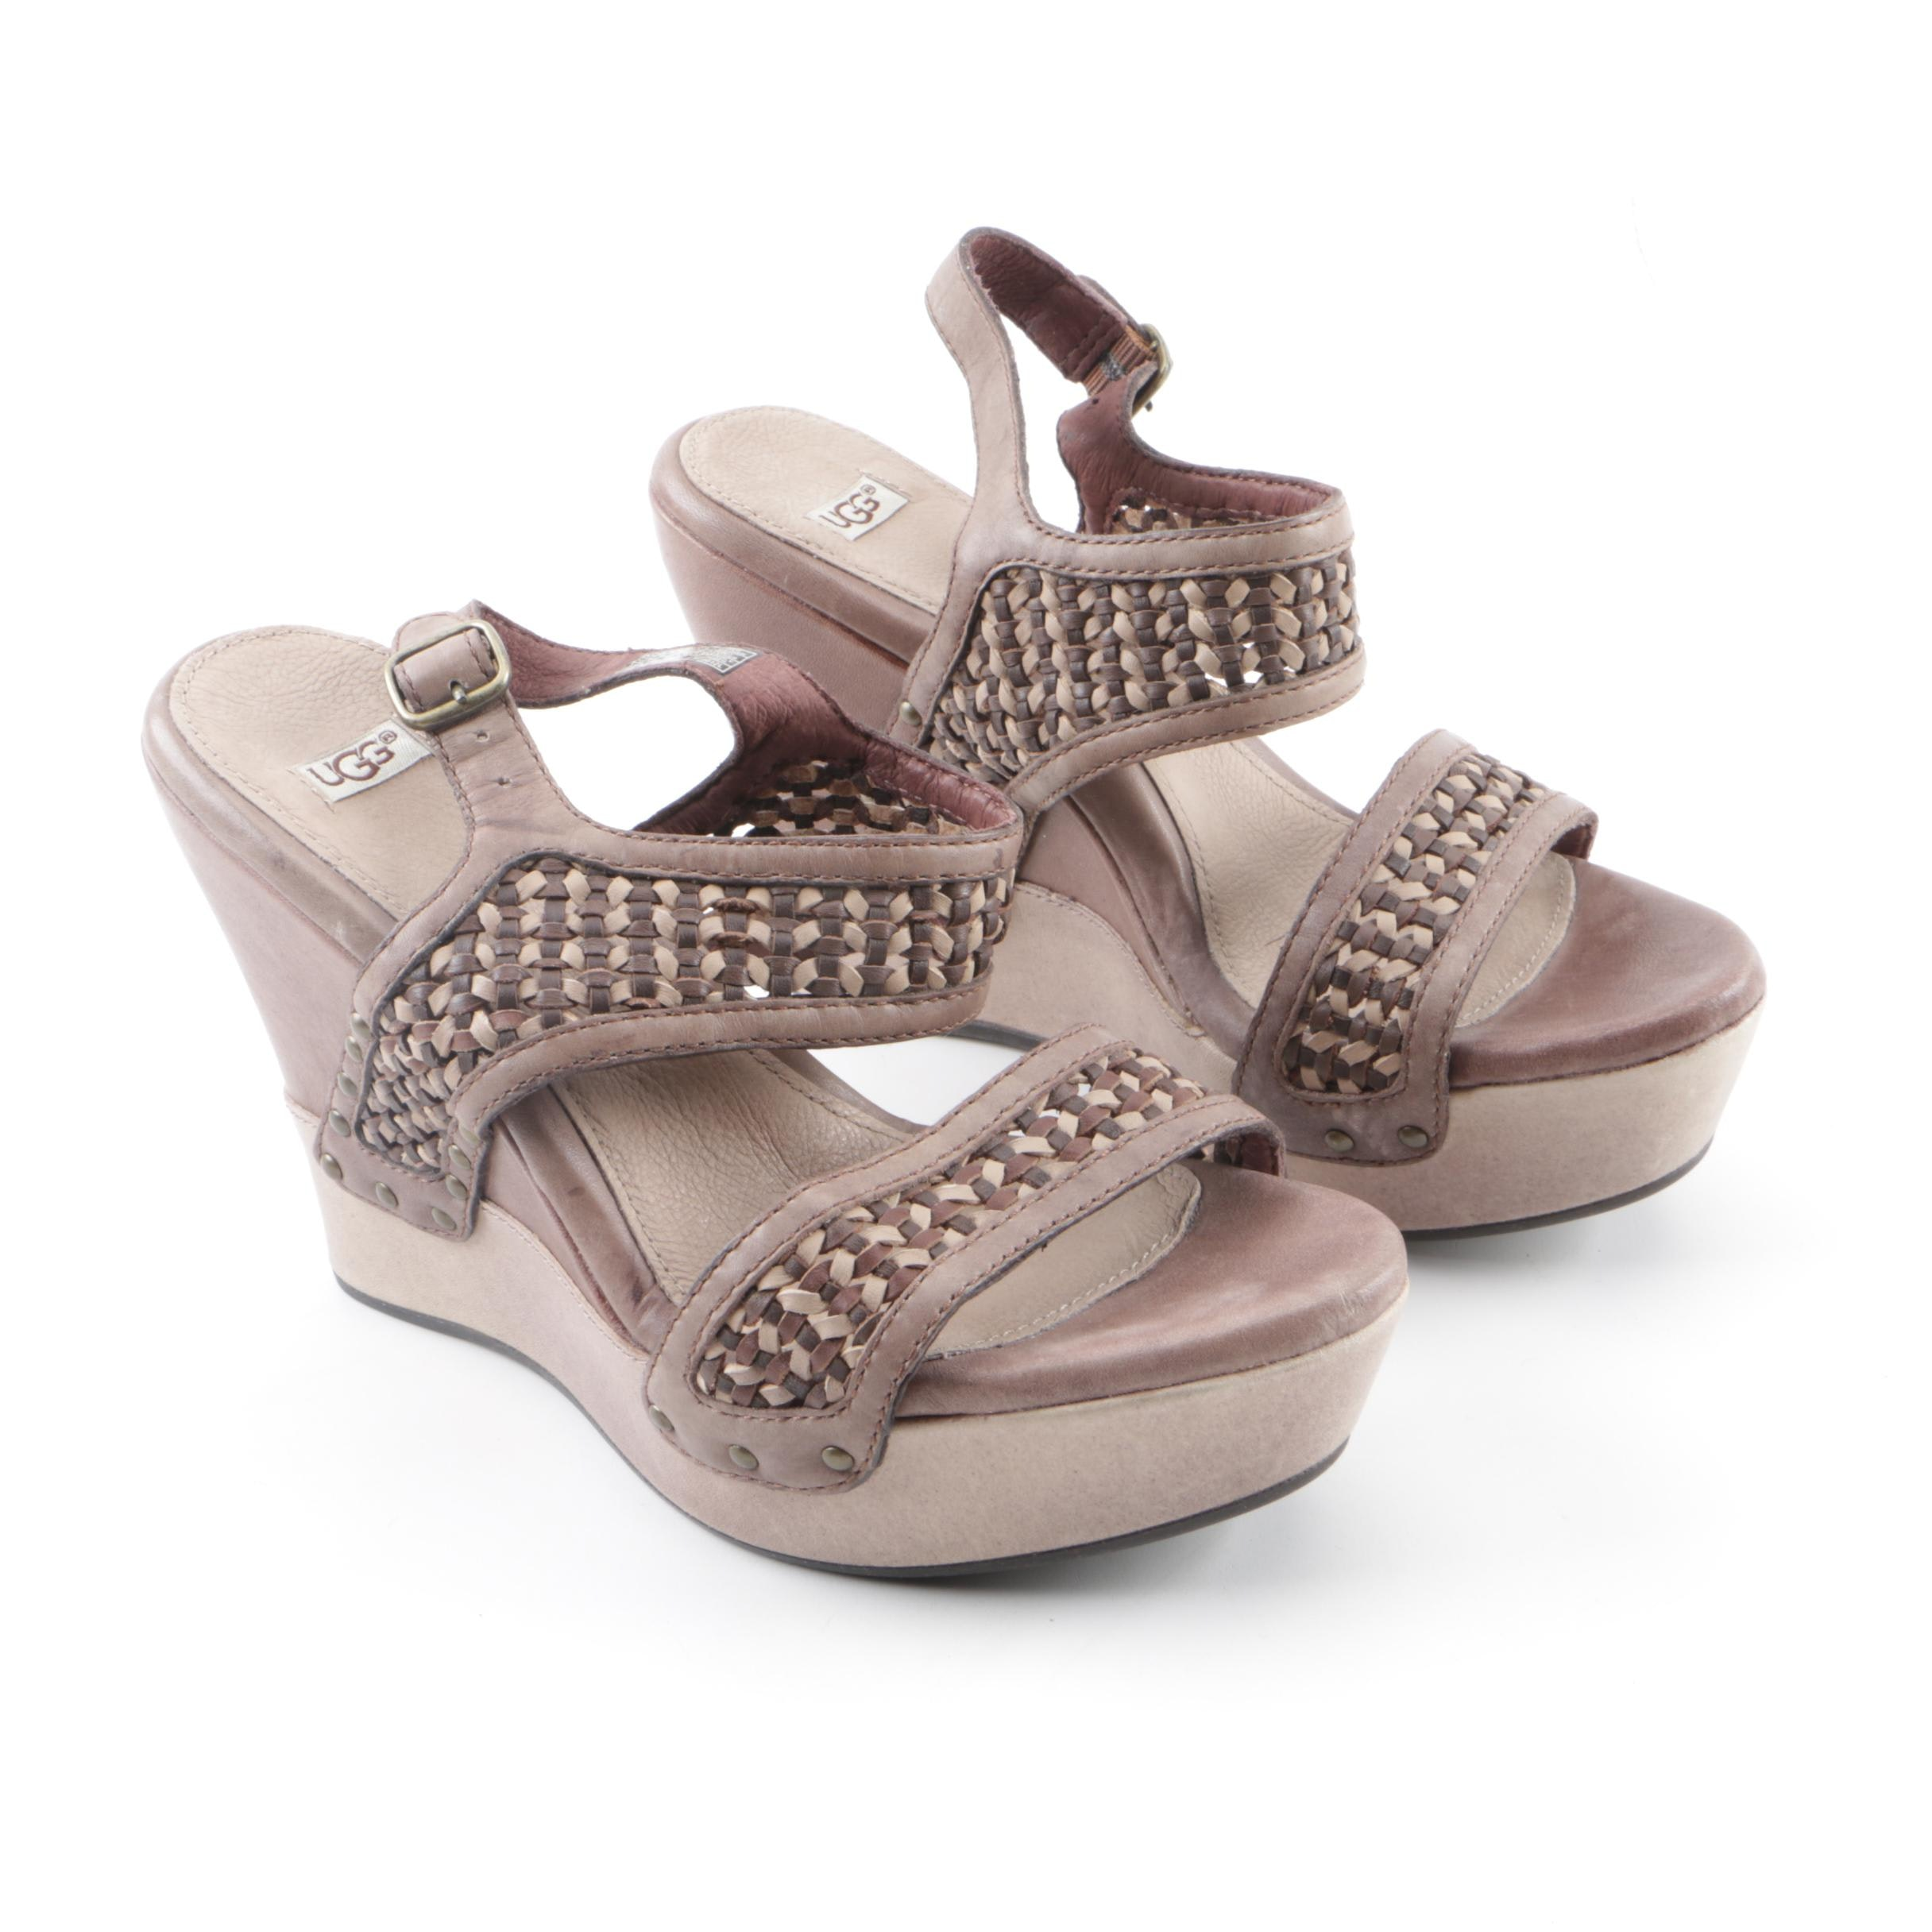 Women's UGG Assia Woven Leather Wedge Sandals